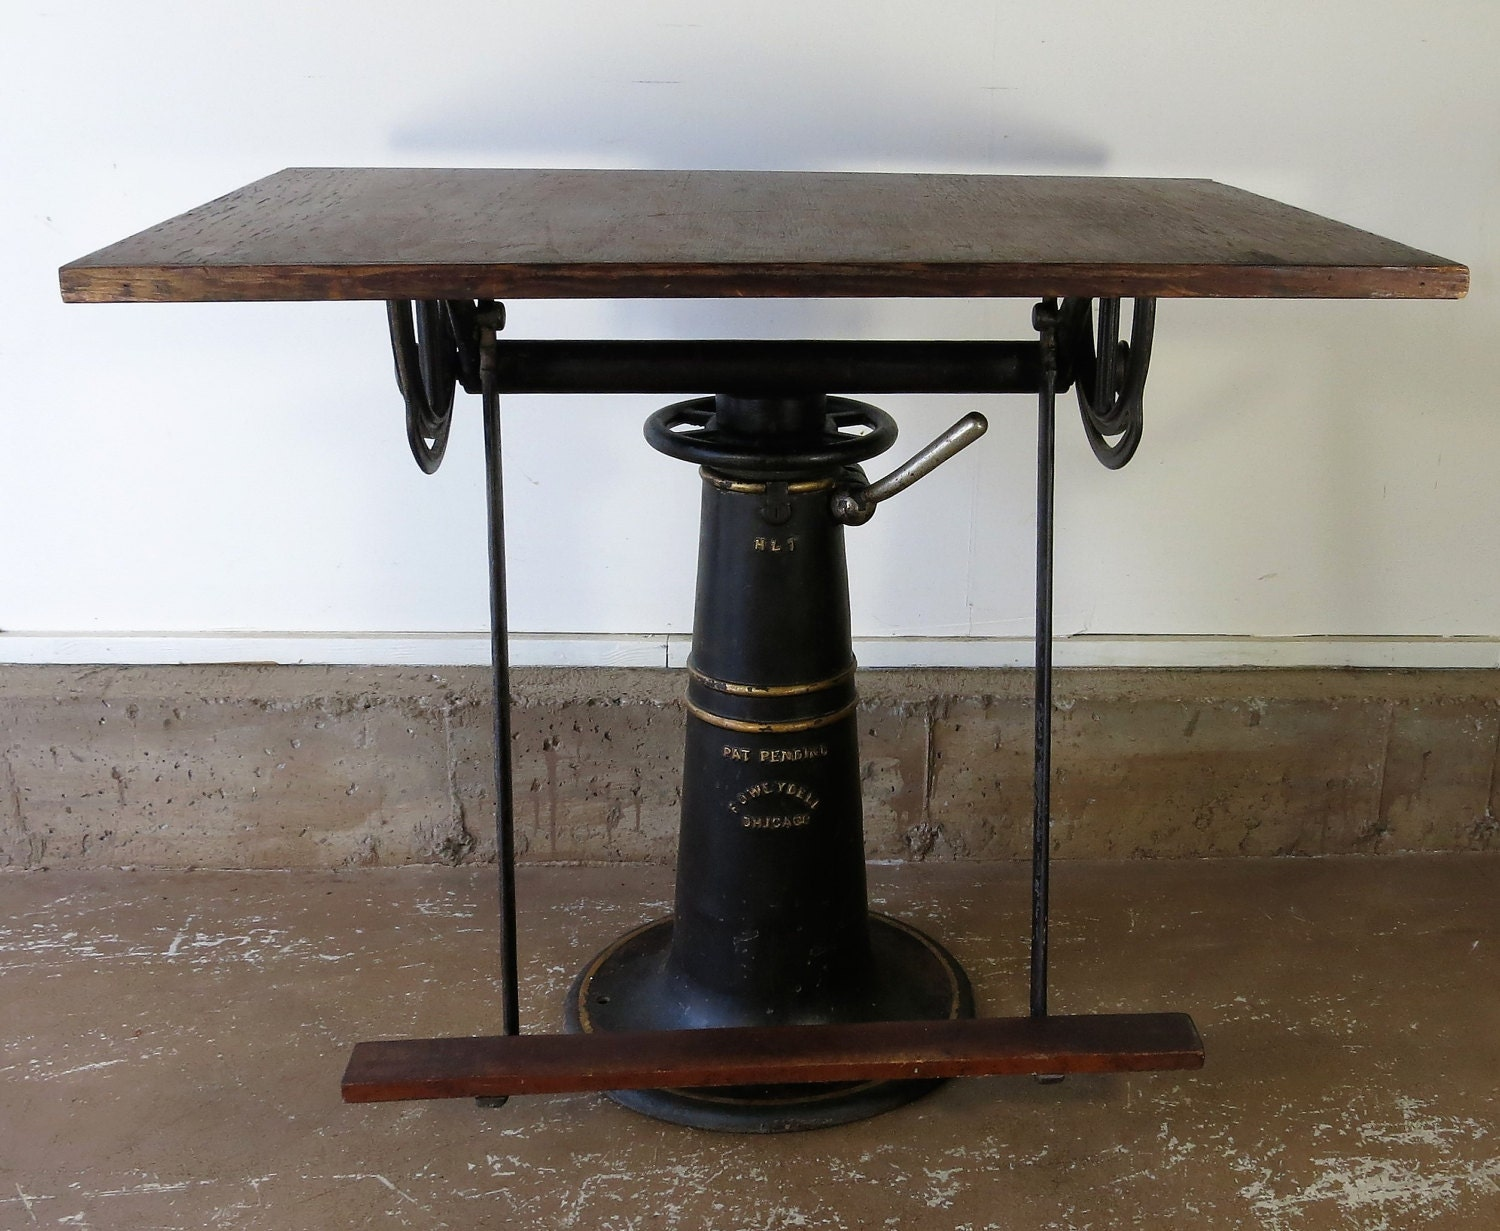 Modern drafting table - Antique Drafting Table F O Weydell 1919 1920 Cast Iron Industrial Table